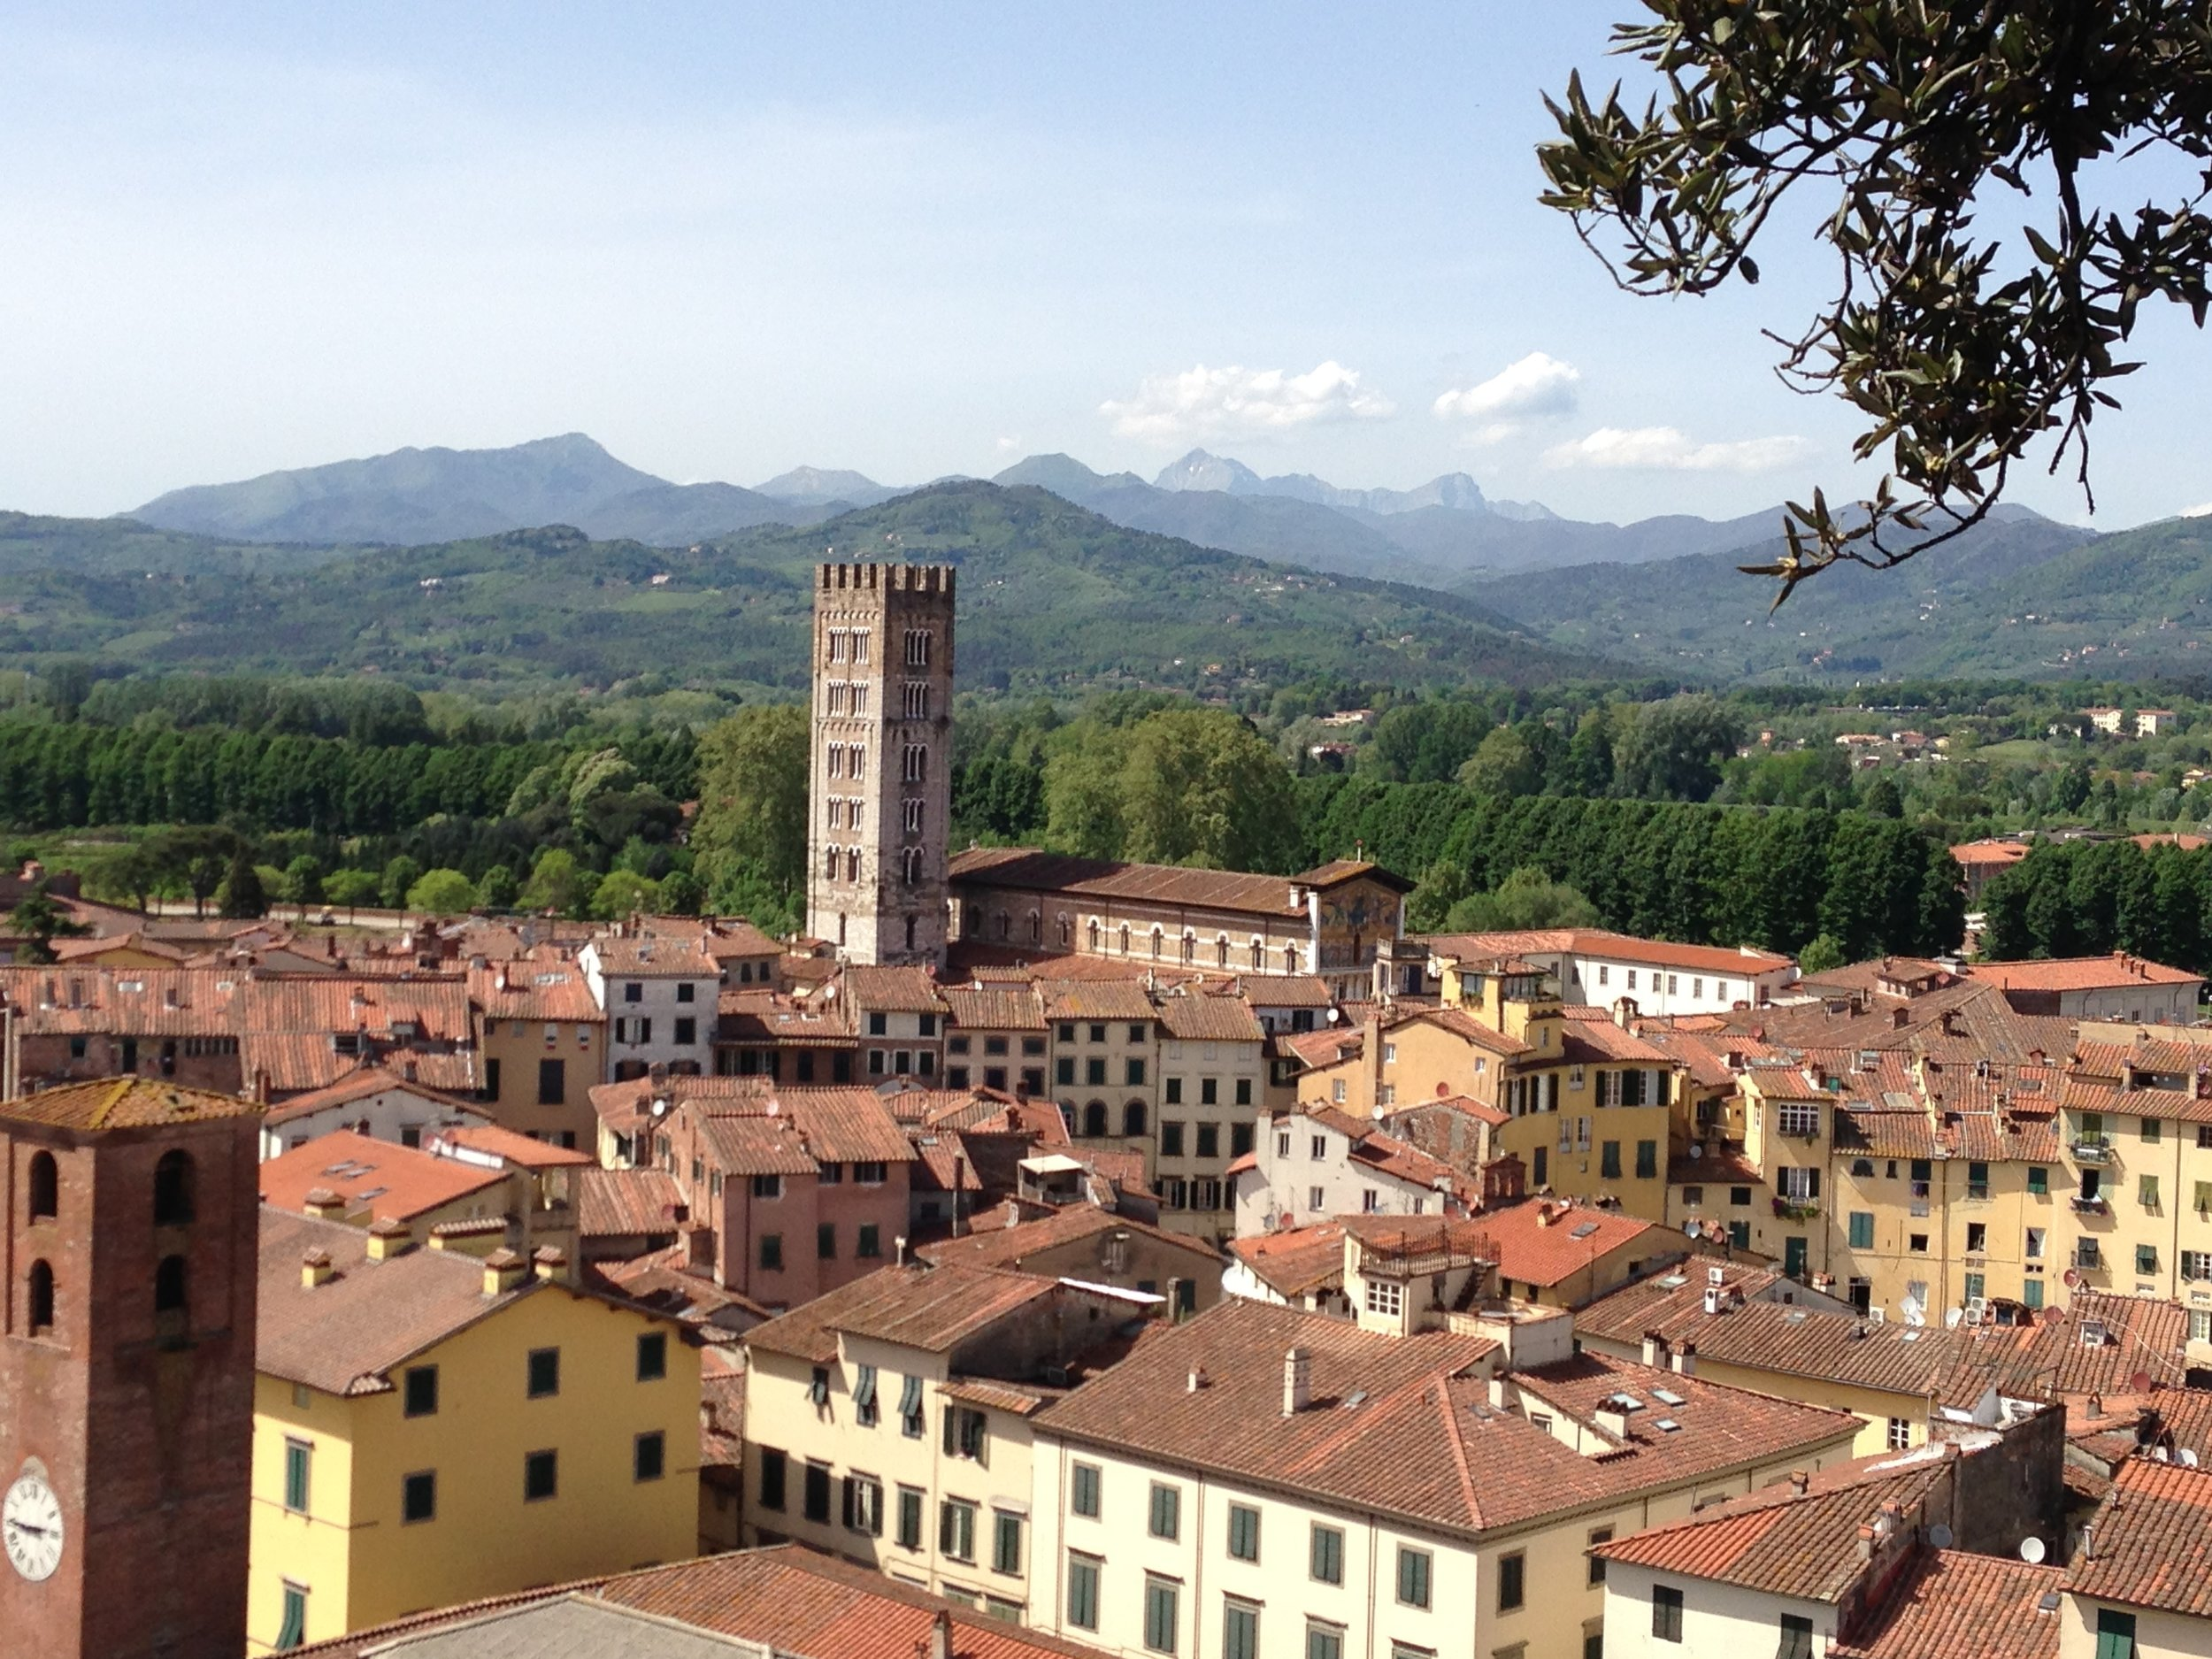 Lucca, as seen from atop the Torre Guinigi.